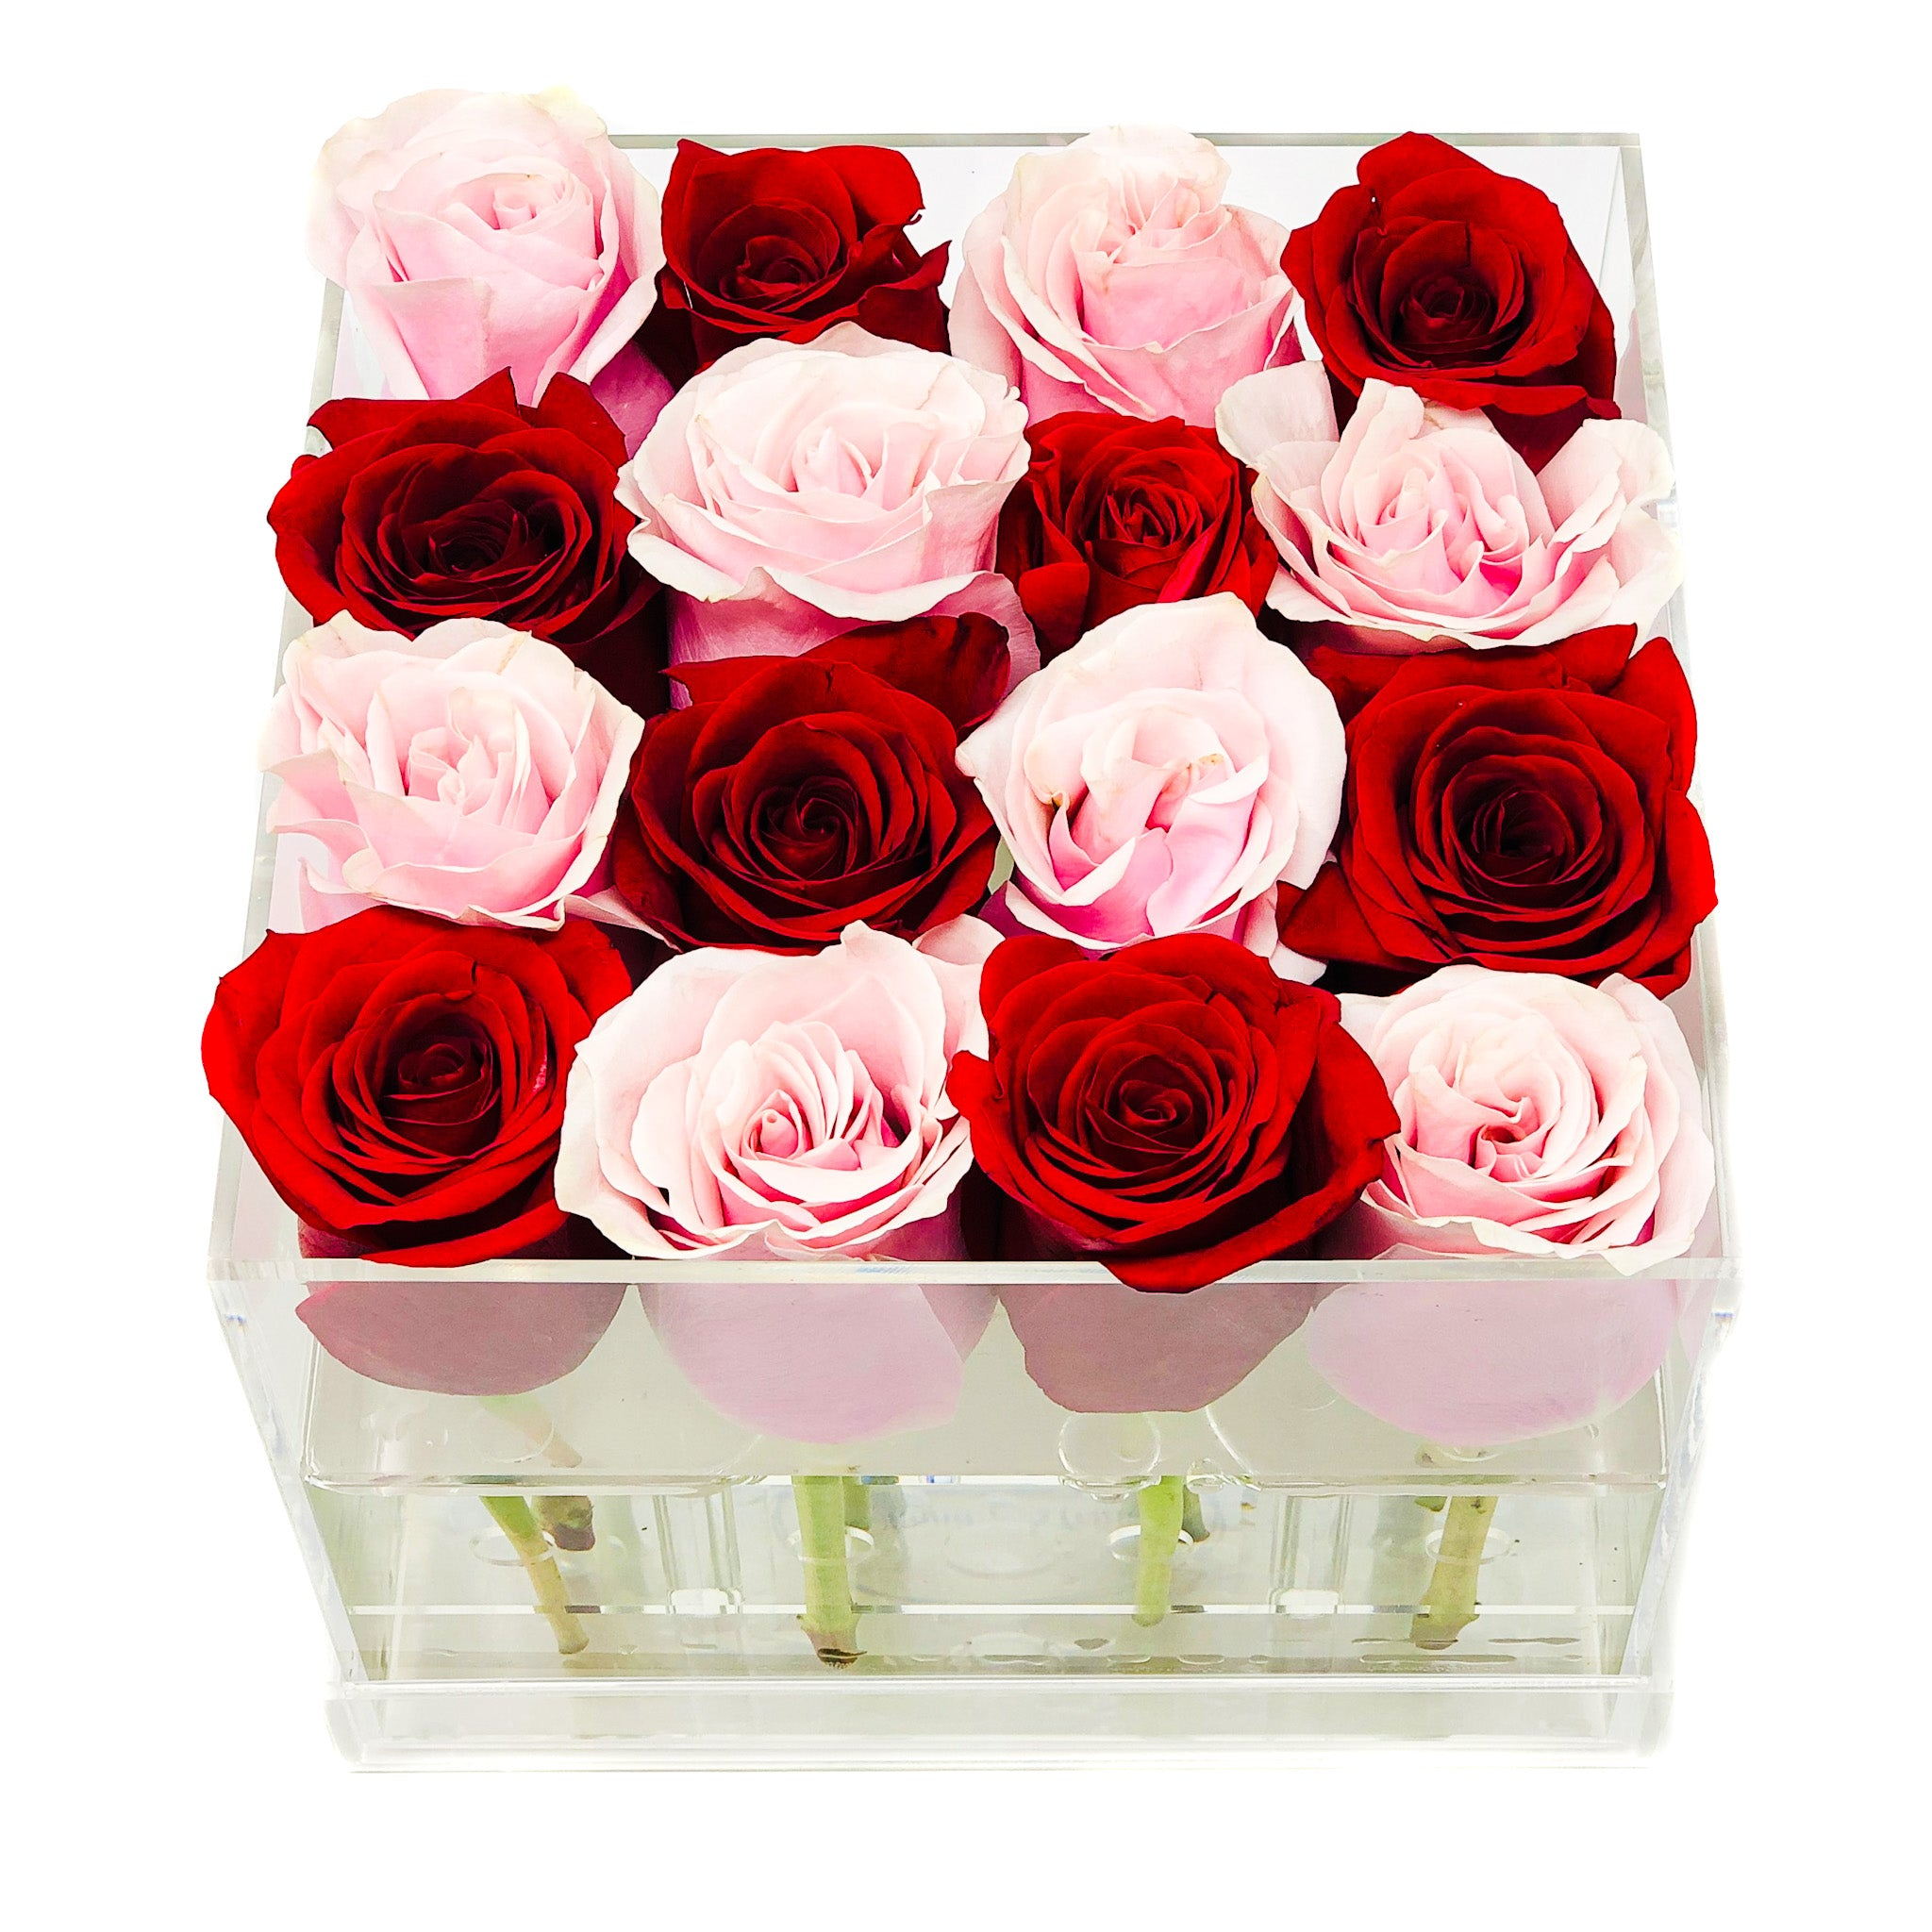 BUILD YOUR OWN FRESH ROSE BOX: Elle Box - Checkered